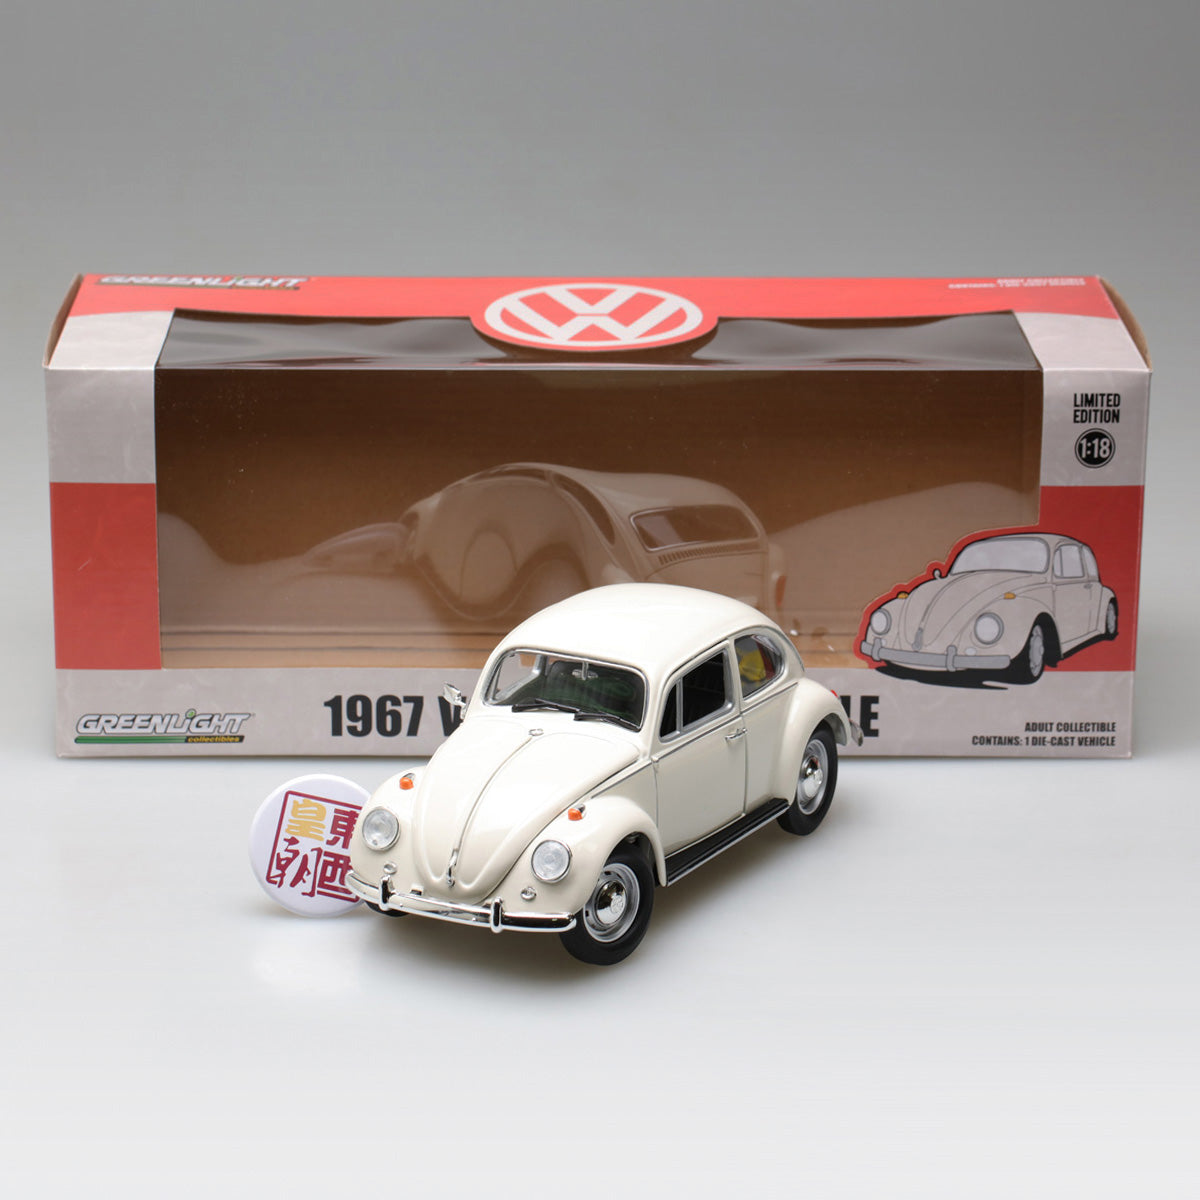 GreenLight 1:18 1967 Volkswagen Beetle Right-Hand Drive - Lotus White 13510